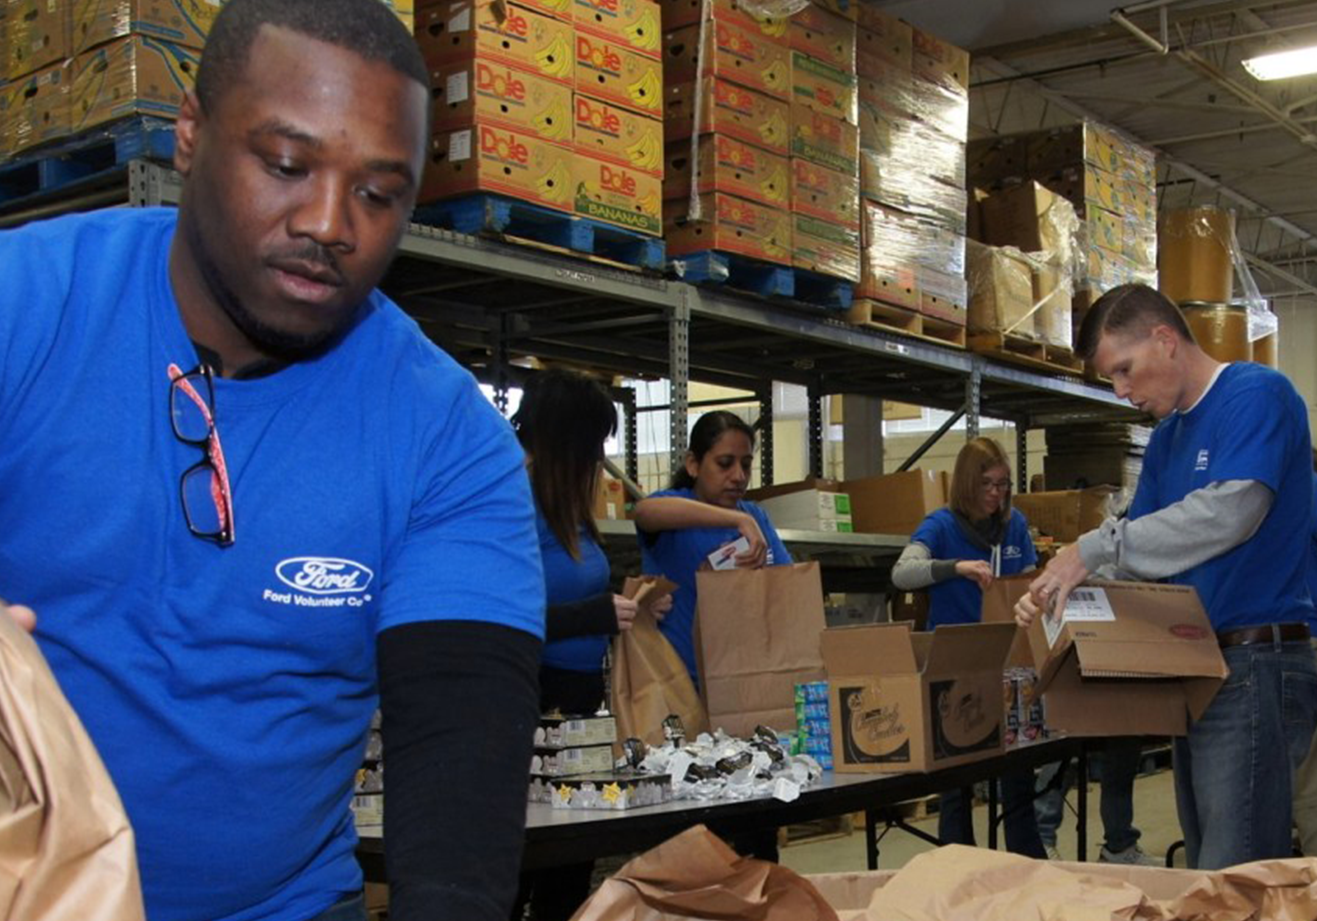 Ford Employees Hunger Relief